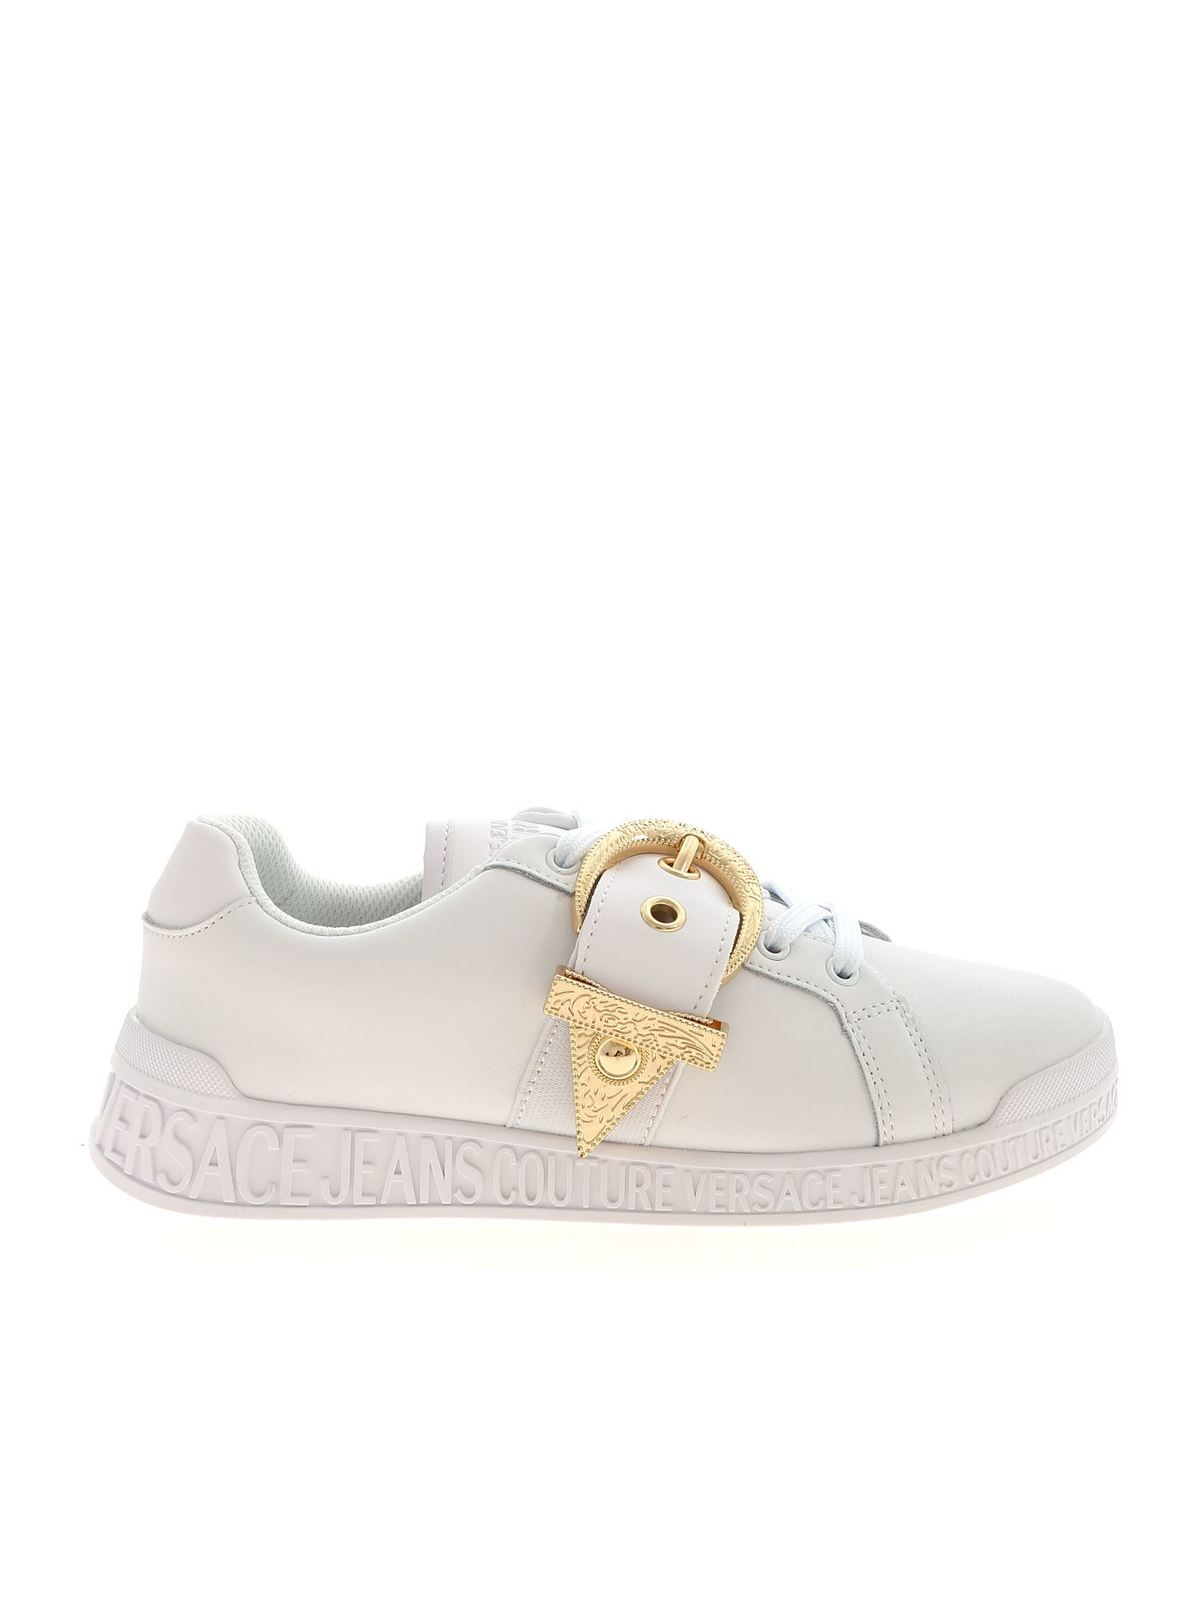 Versace Jeans Couture BUCKLE SNEAKERS IN WHITE